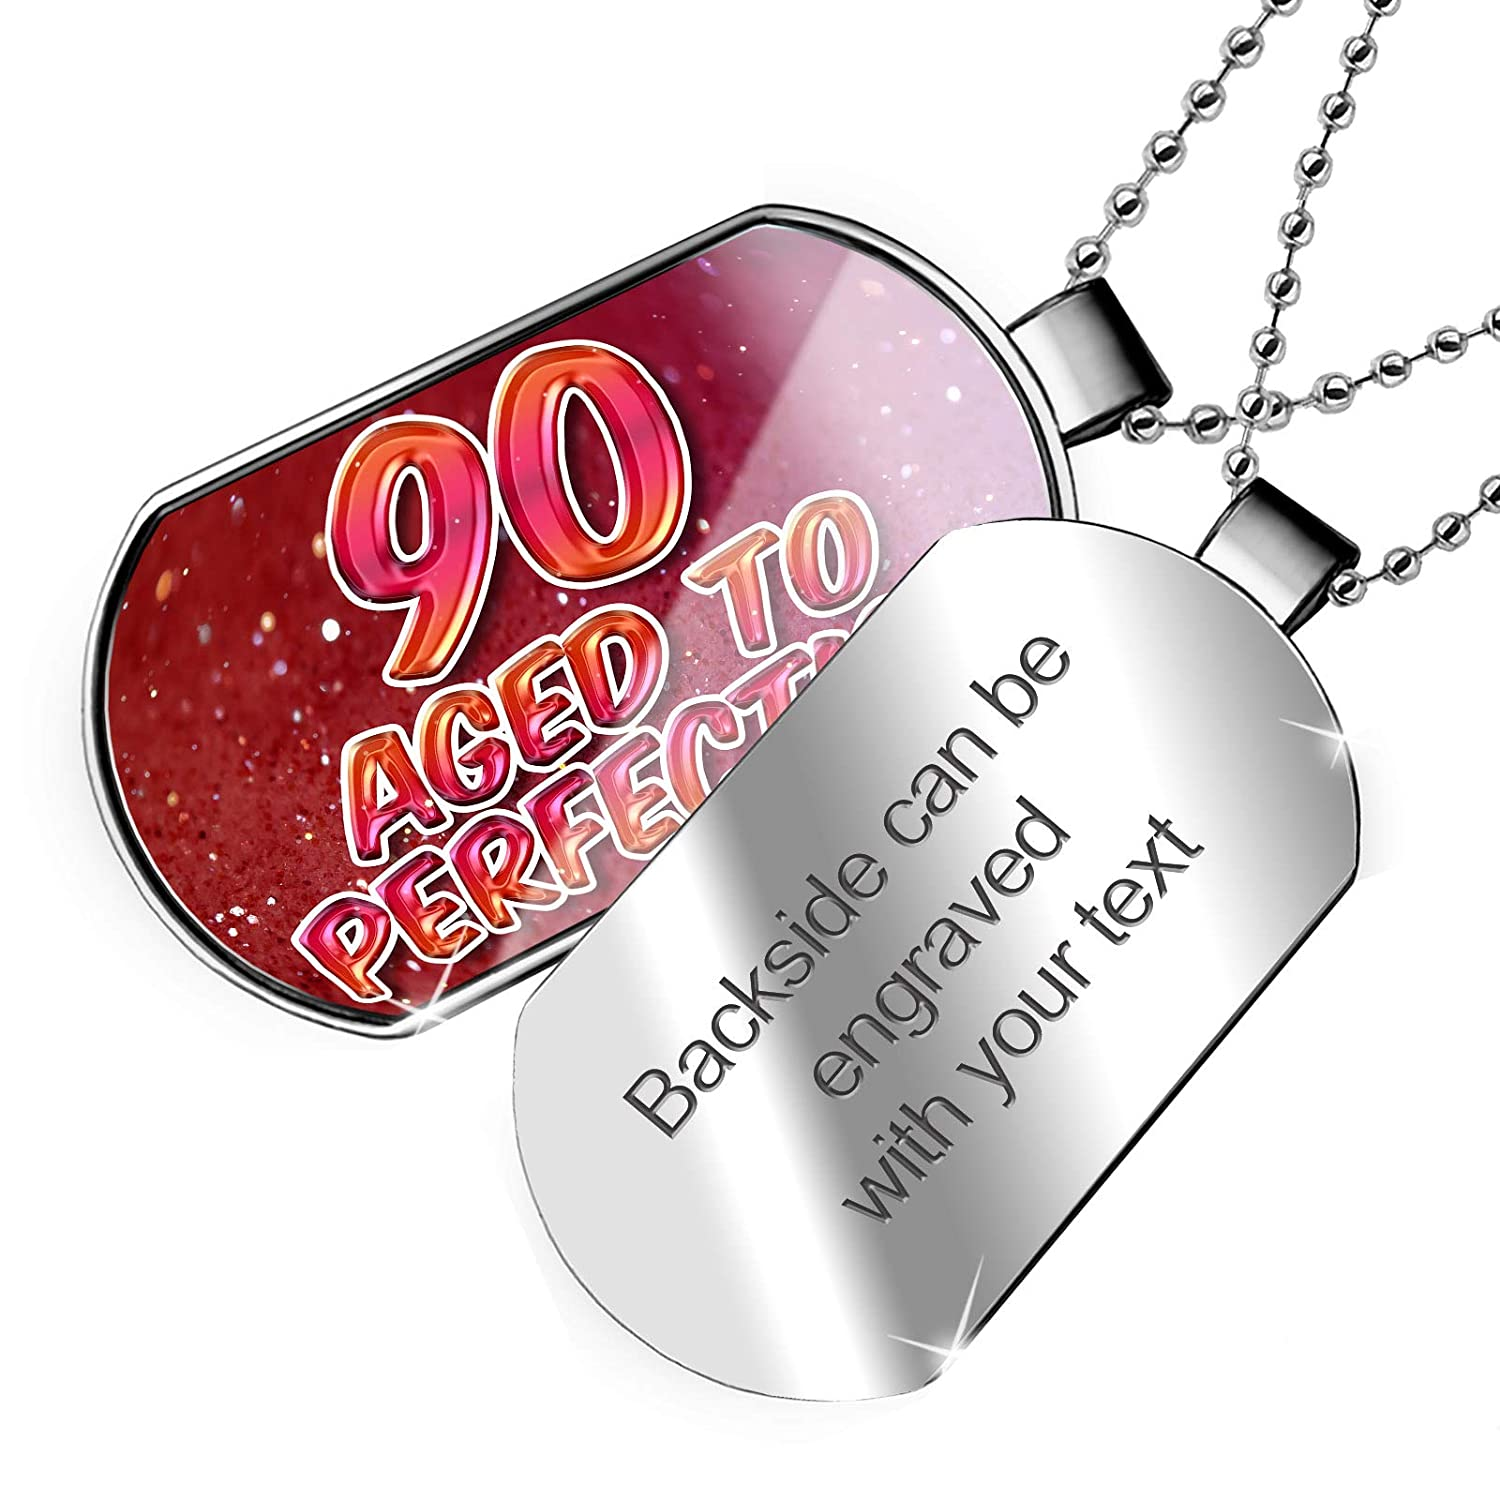 Aged to Perfection Happy Birthday Dogtag Necklace NEONBLOND Personalized Name Engraved 90 Years